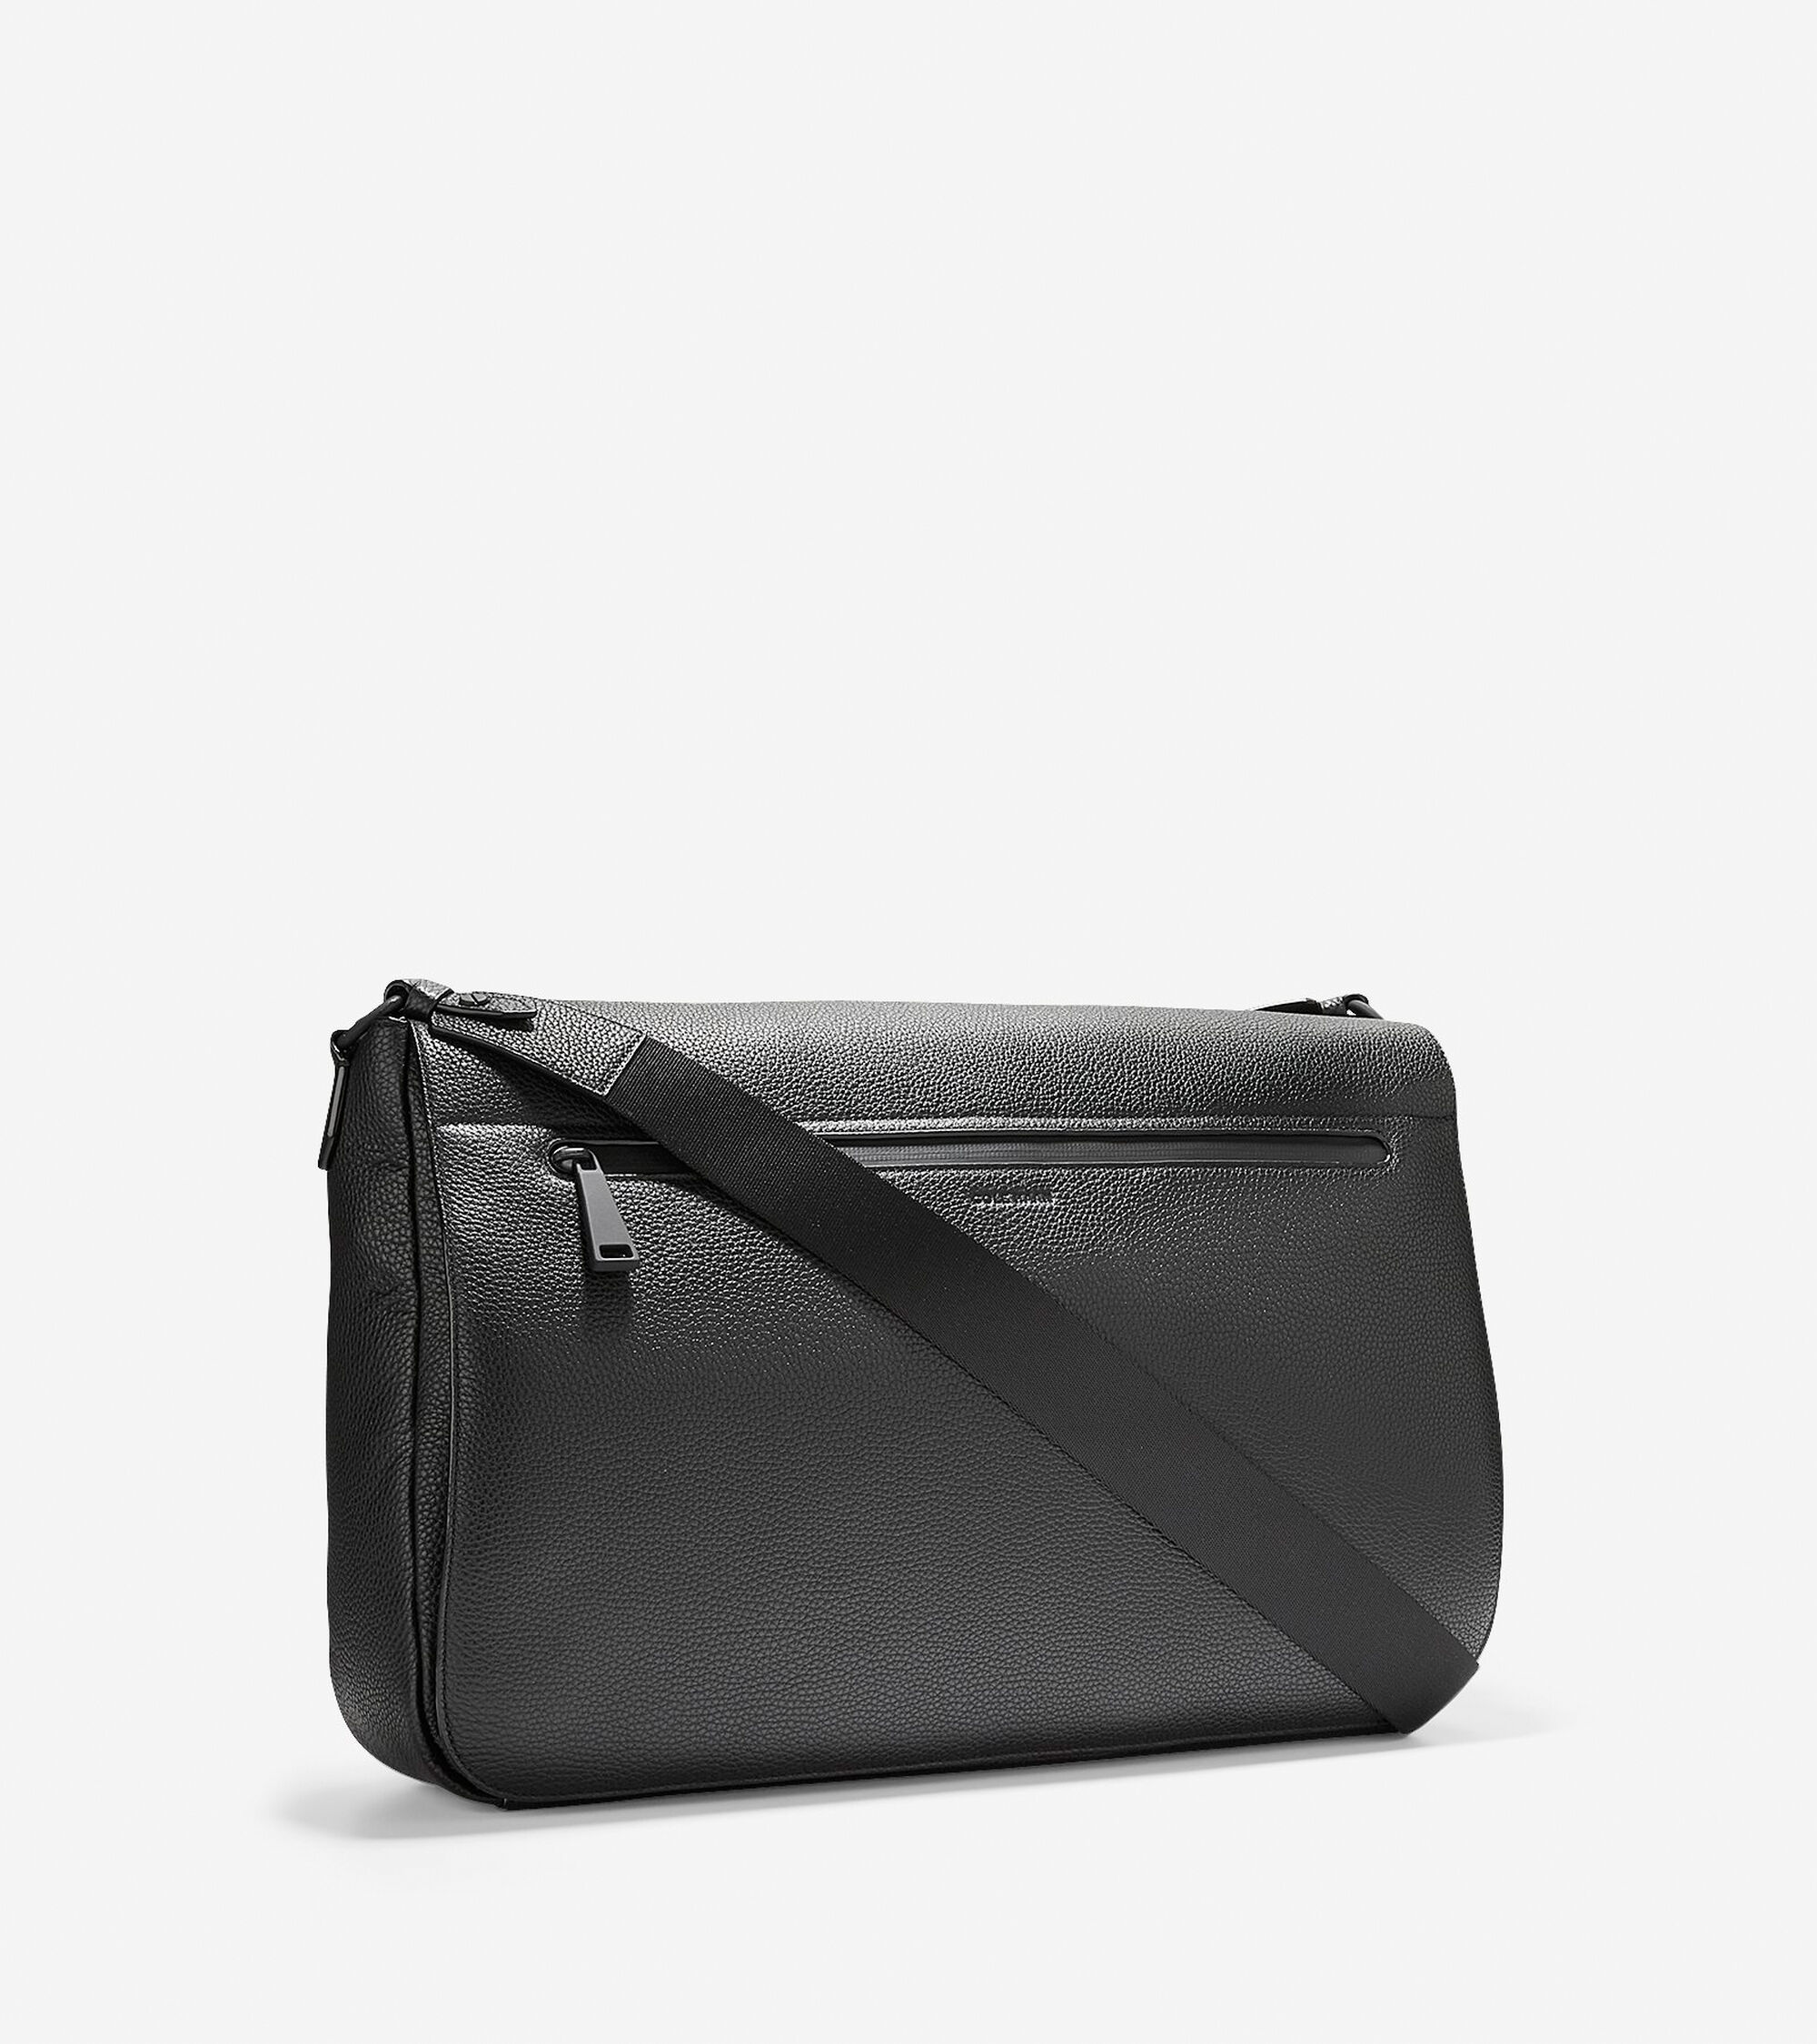 daacbd4c7c4a Men s Grand.OS Leather Messenger Bag in Black